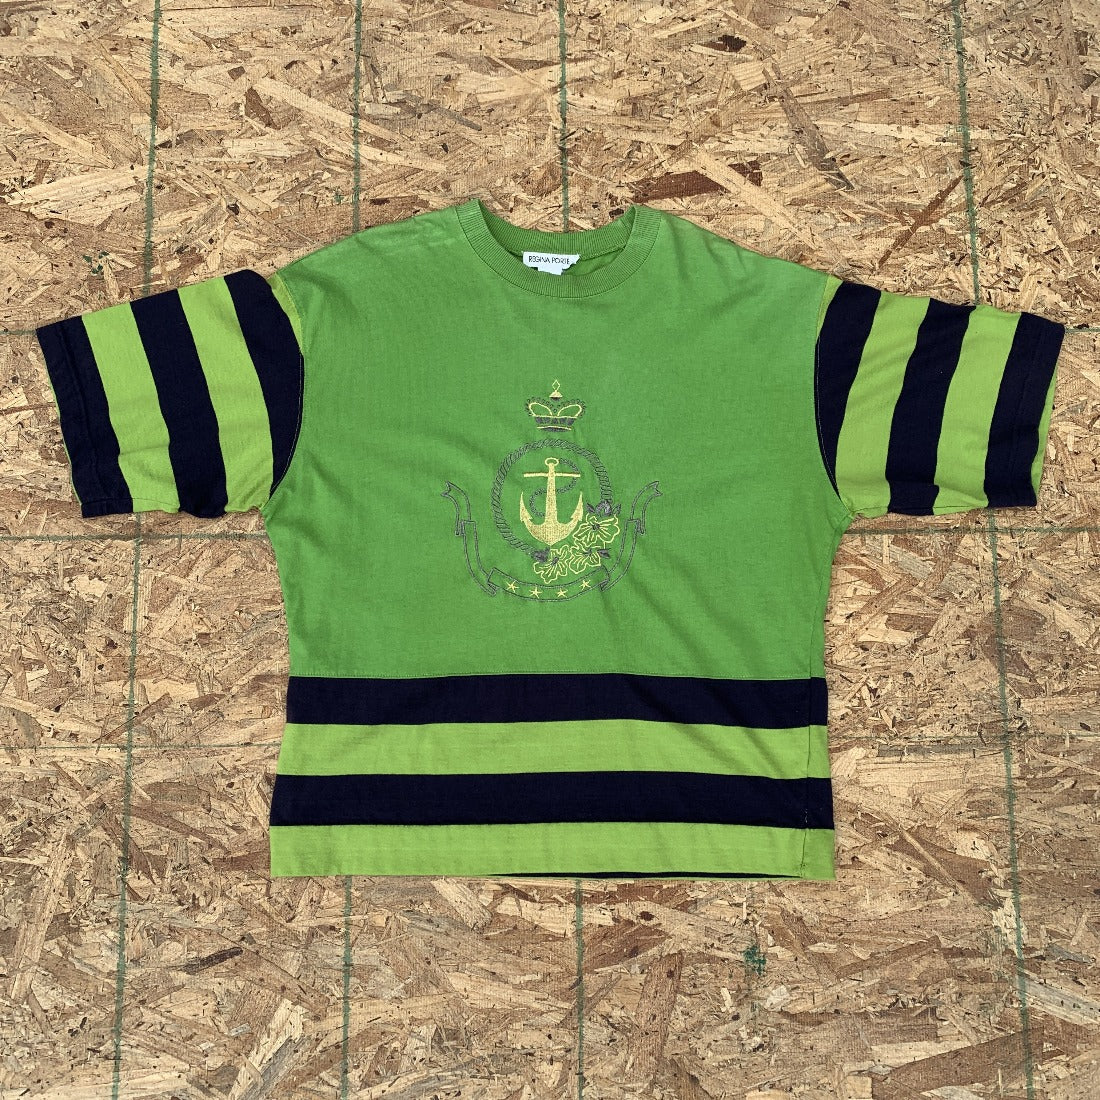 Green Top with Black Stripes and Gold Anchor